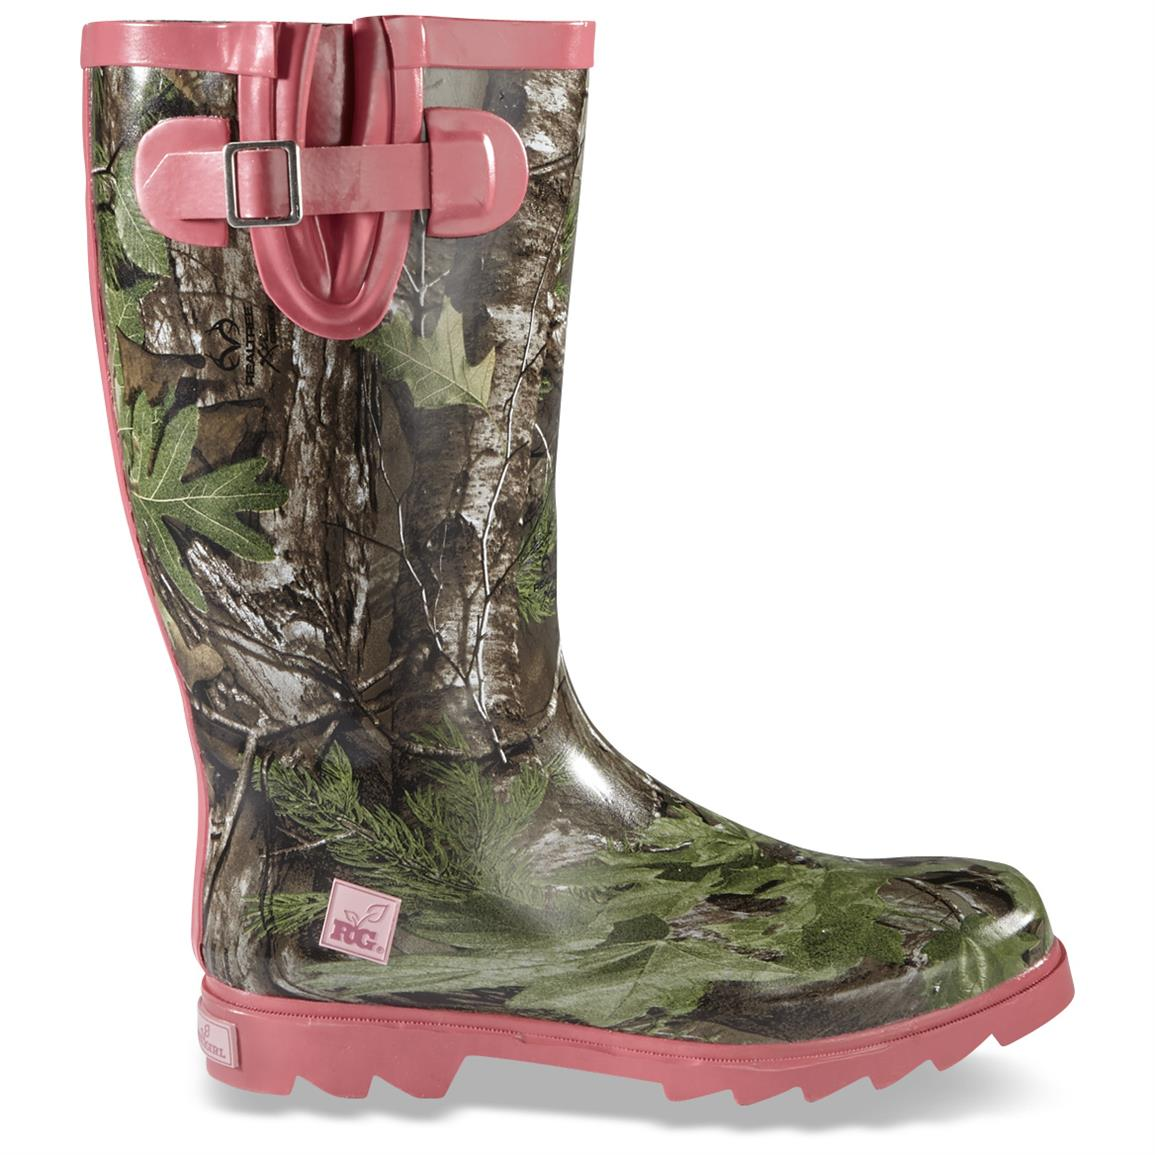 Realtree Girl Women's Ms. JoJo Rain Boots, Hot Pink / Realtree Xtra Green